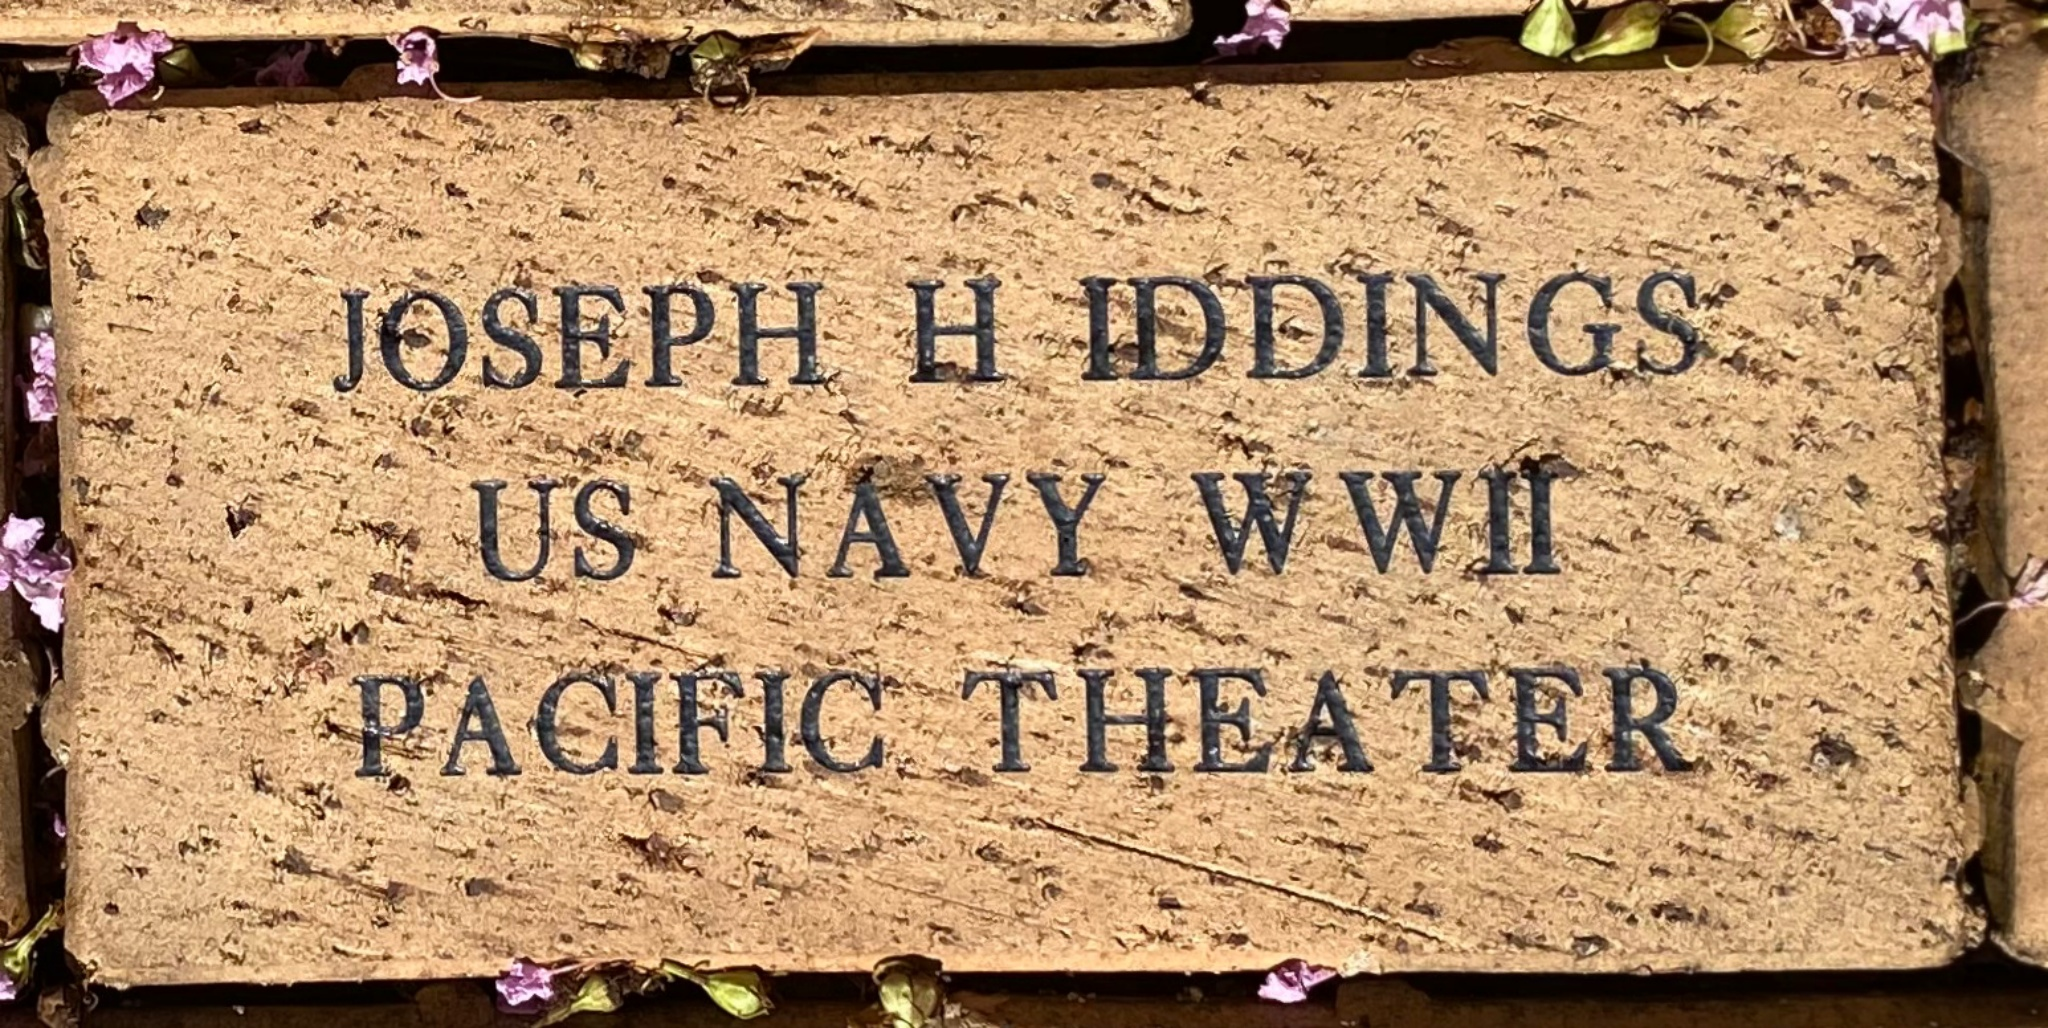 JOSEPH H IDDINGS US NAVY WWII PACIFIC THEATER